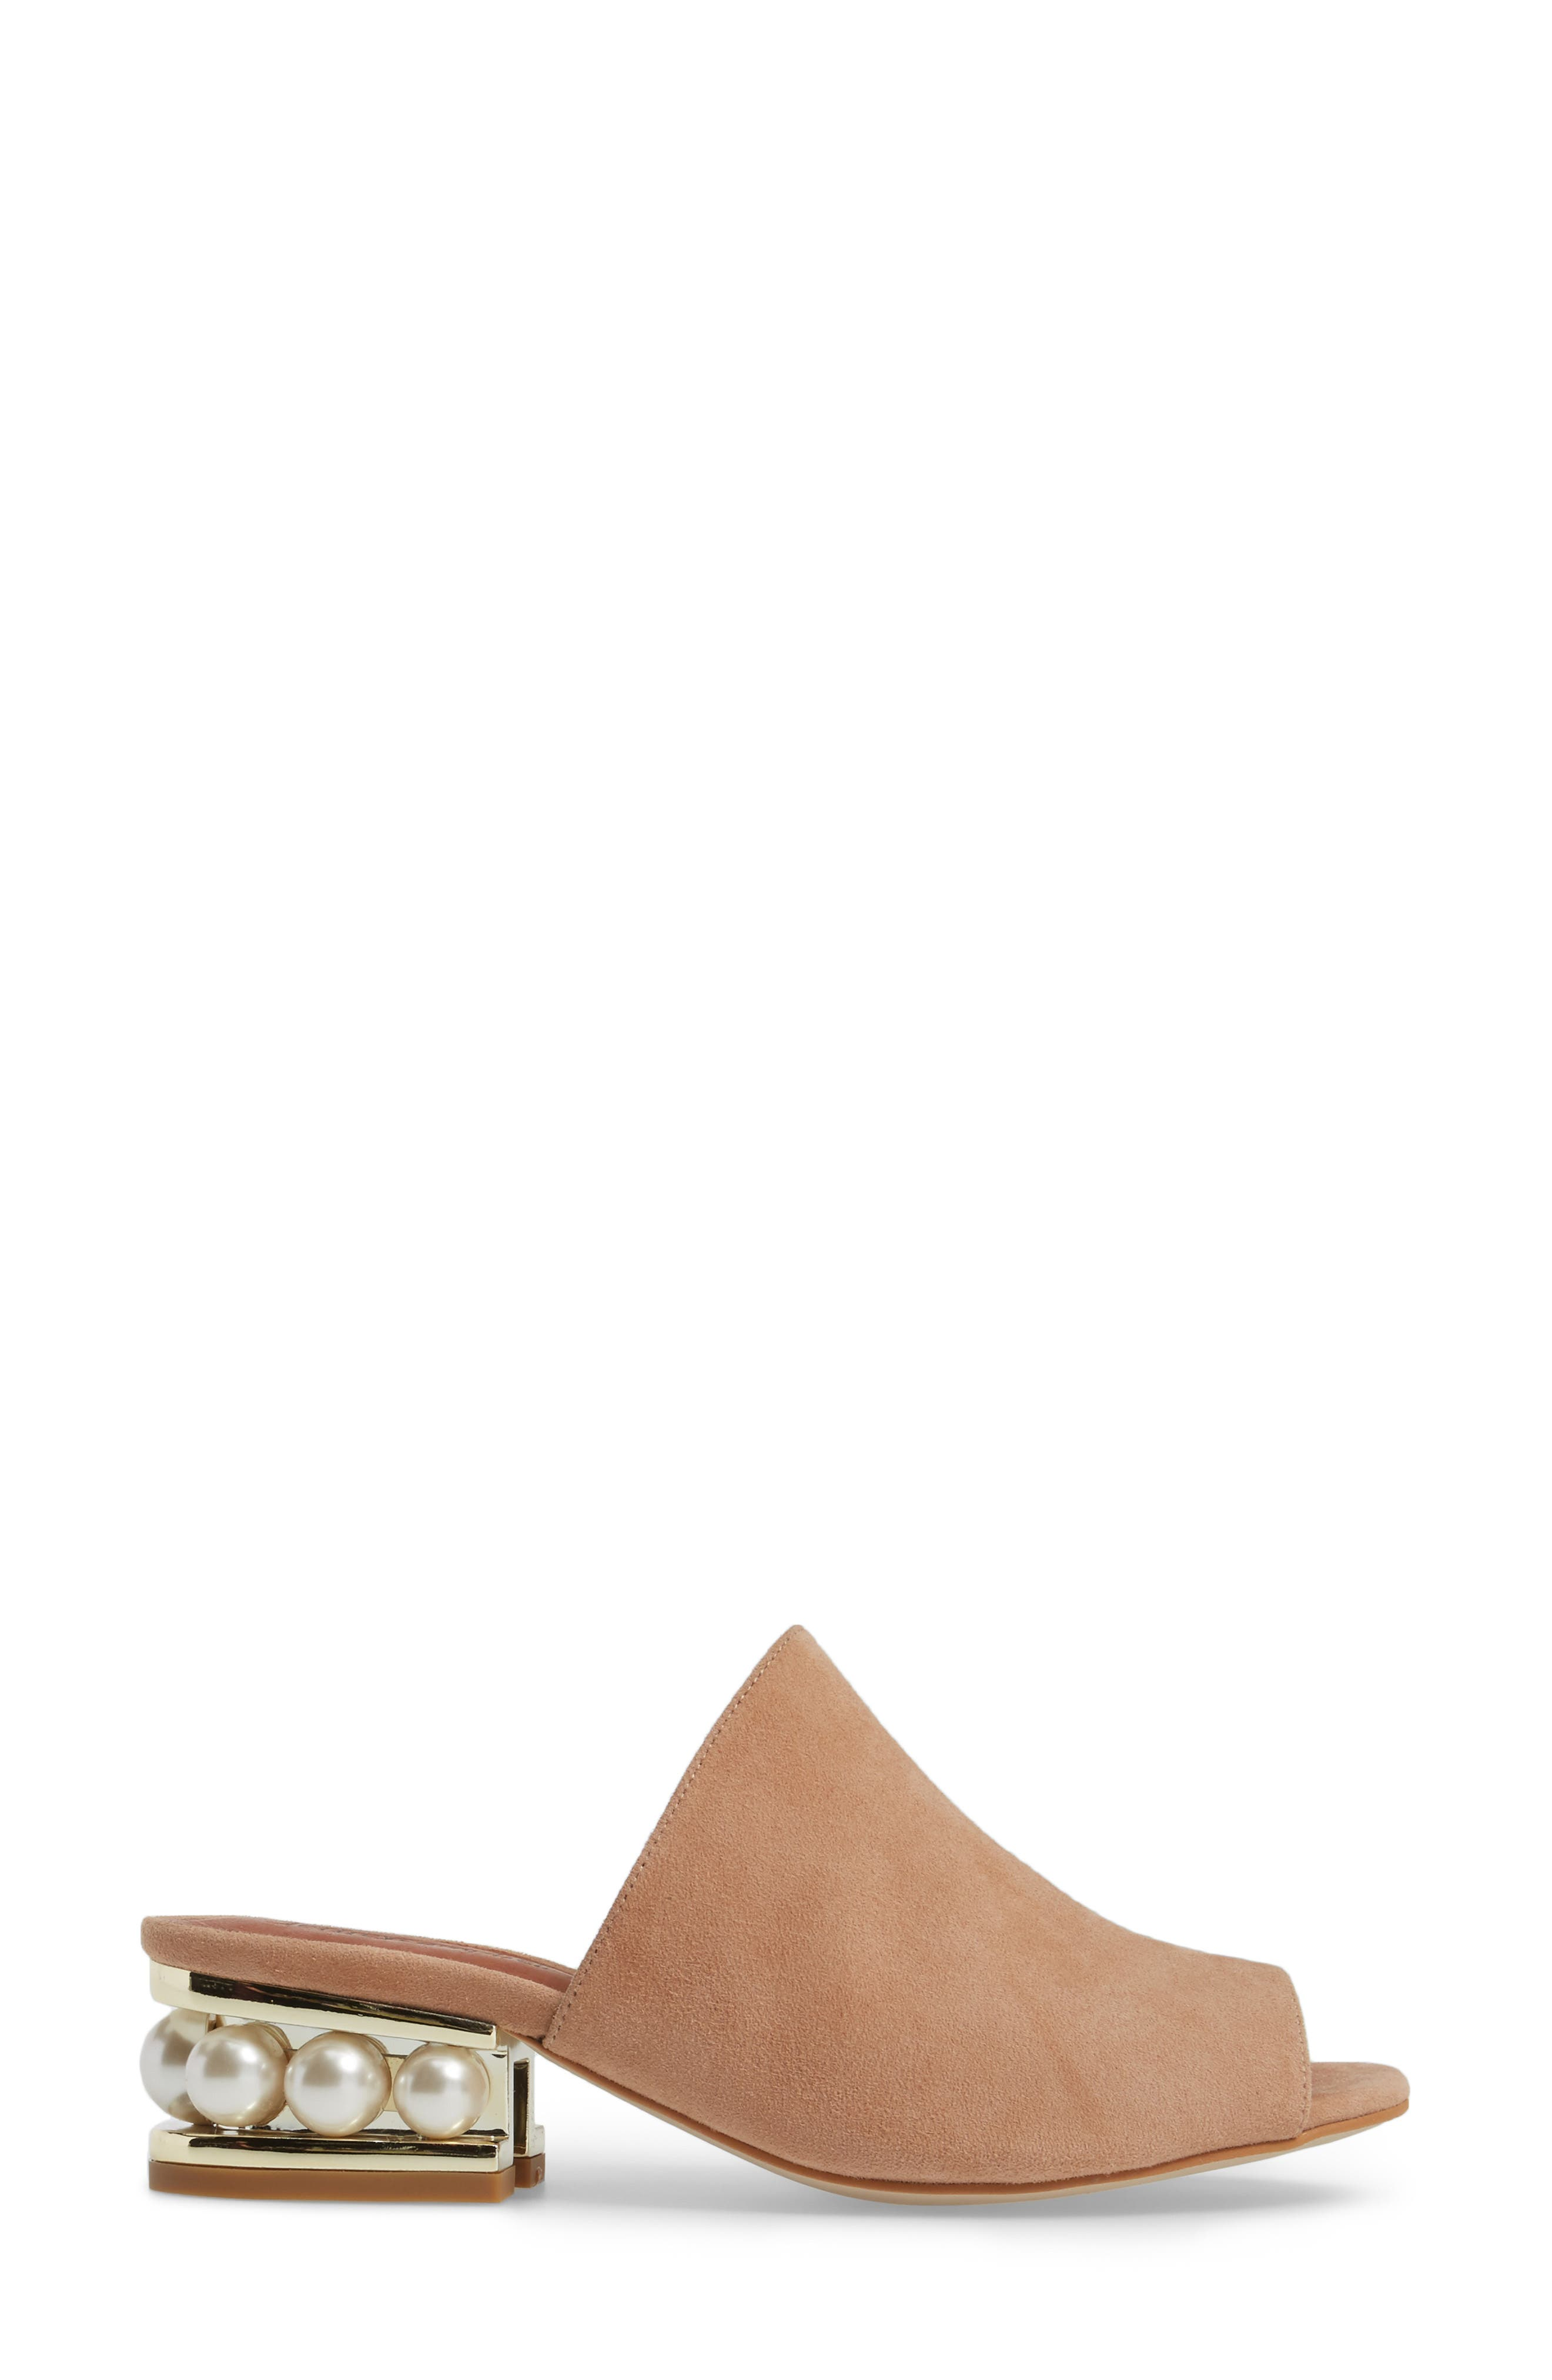 Alternate Image 3  - Jeffrey Campbell Arcita Slide Sandal (Women)